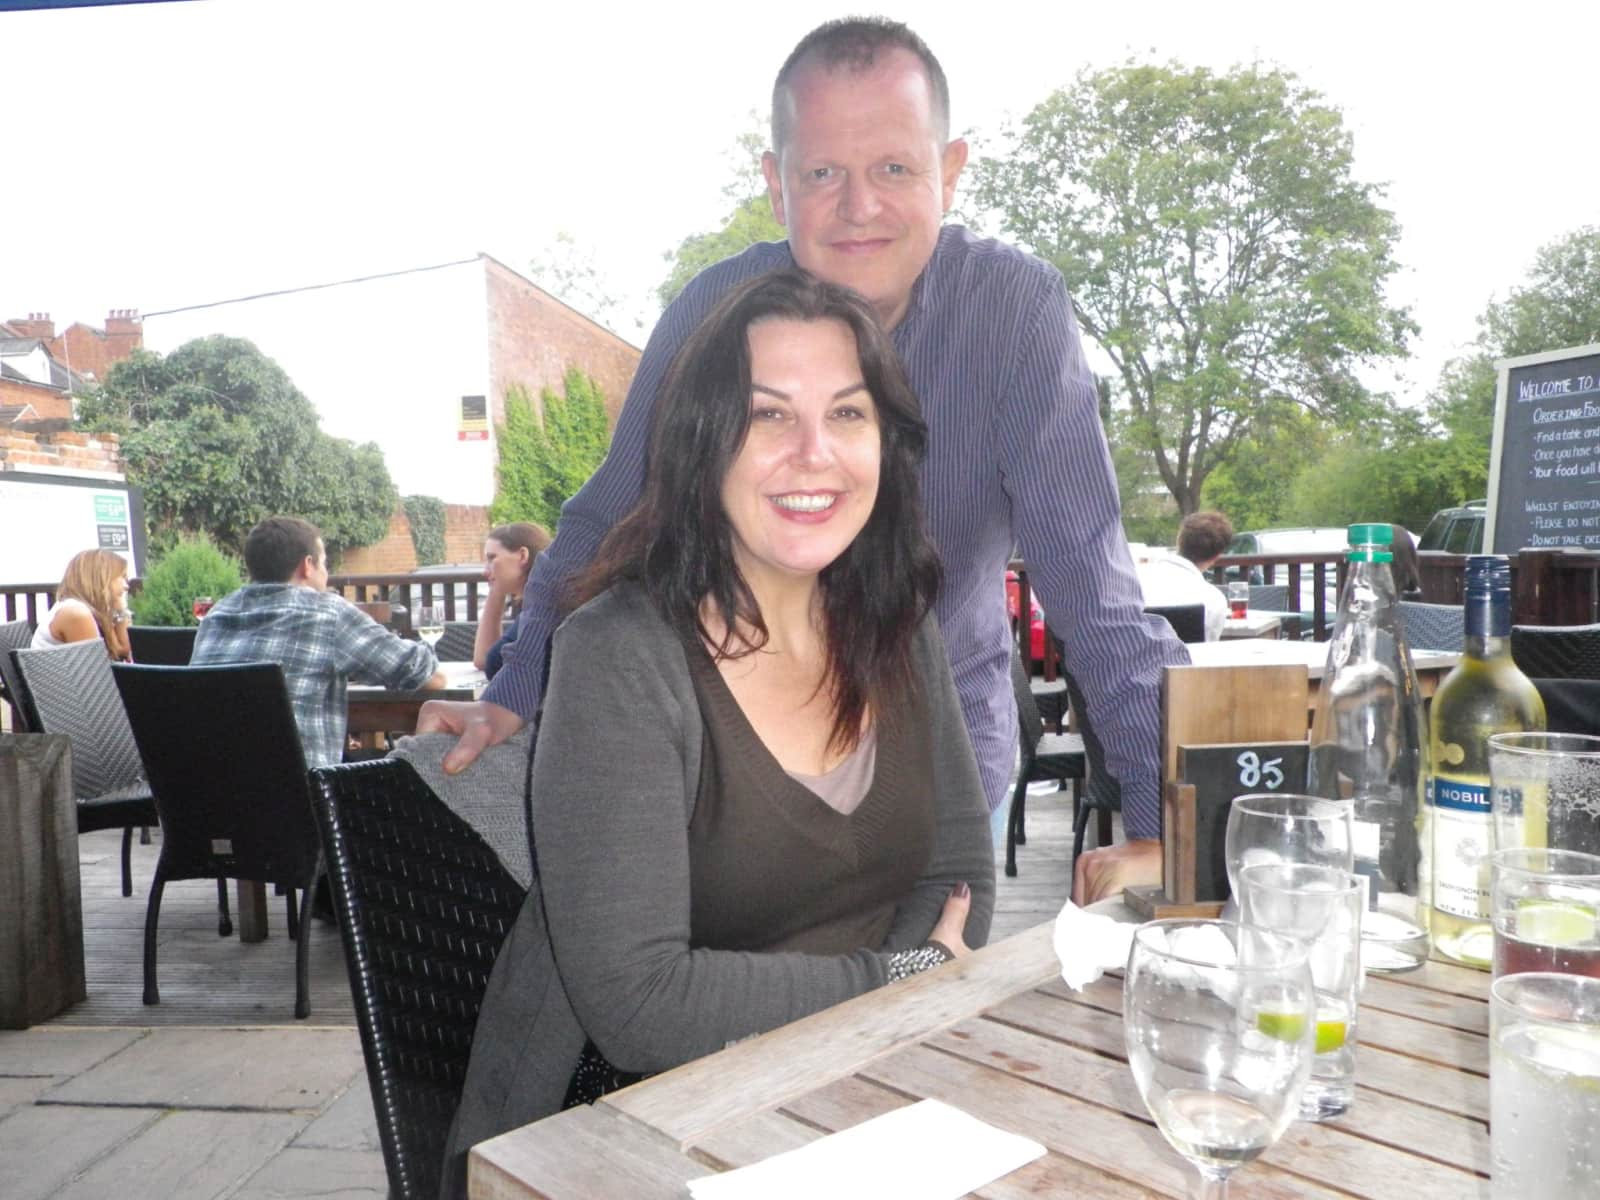 Treve & Anne-marie from Reading, United Kingdom